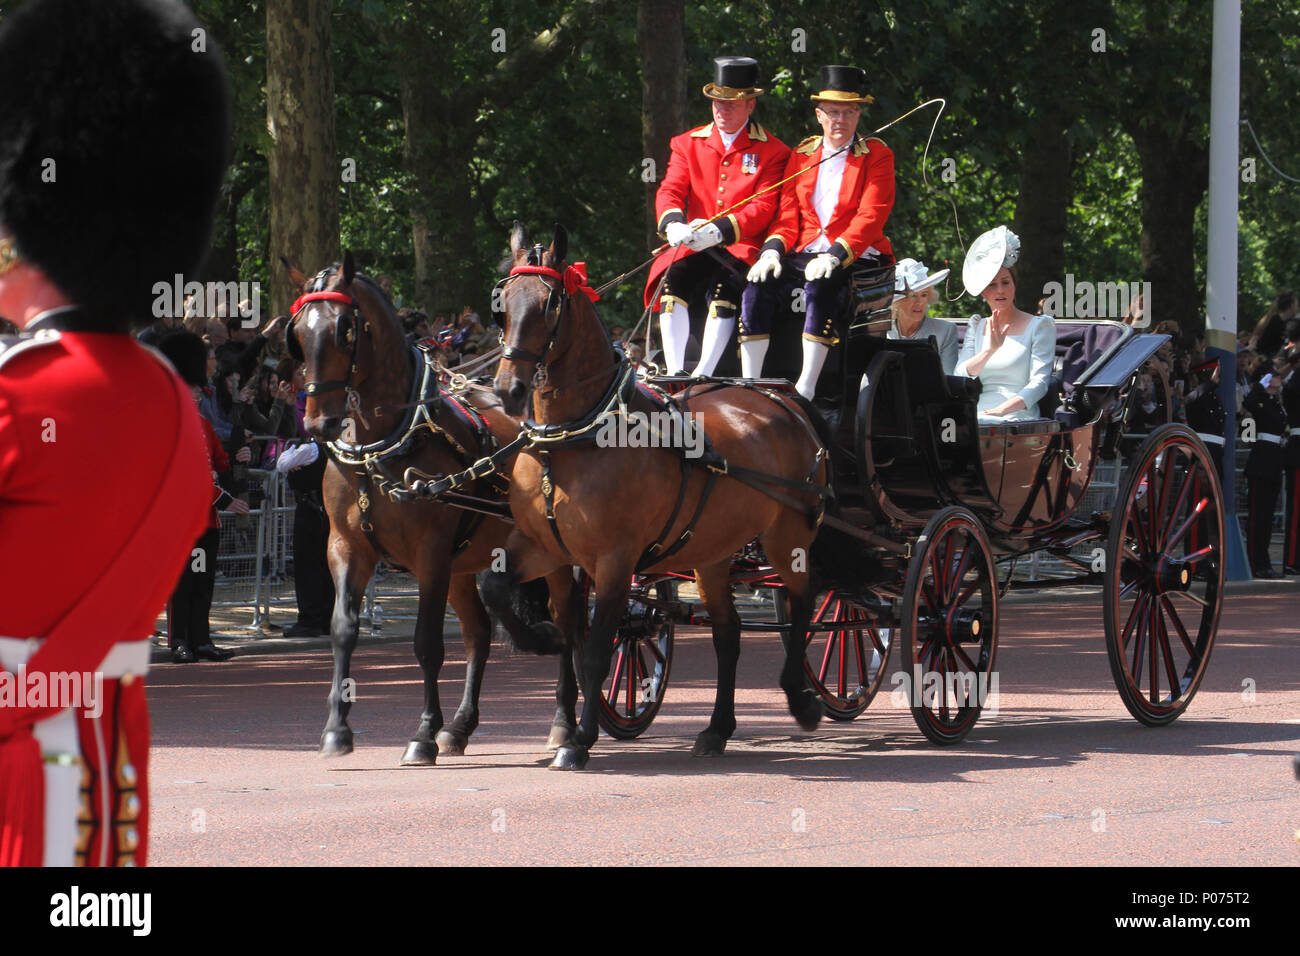 London, UK 9 June 2018: Camila the Duchess of Cornwall with Catherine, Duchess of Cambridge seen on a horse-drawn carriage as they make their way to the Horse Guards Parade Ground on 9 June 2018. Over 1400 parading soldiers, 200 horses and 400 musicians come together each June in a great display of military precision, horsemanship and fanfare to mark The Queen's official birthday. Credit: David Mbiyu/Alamy - Stock Image